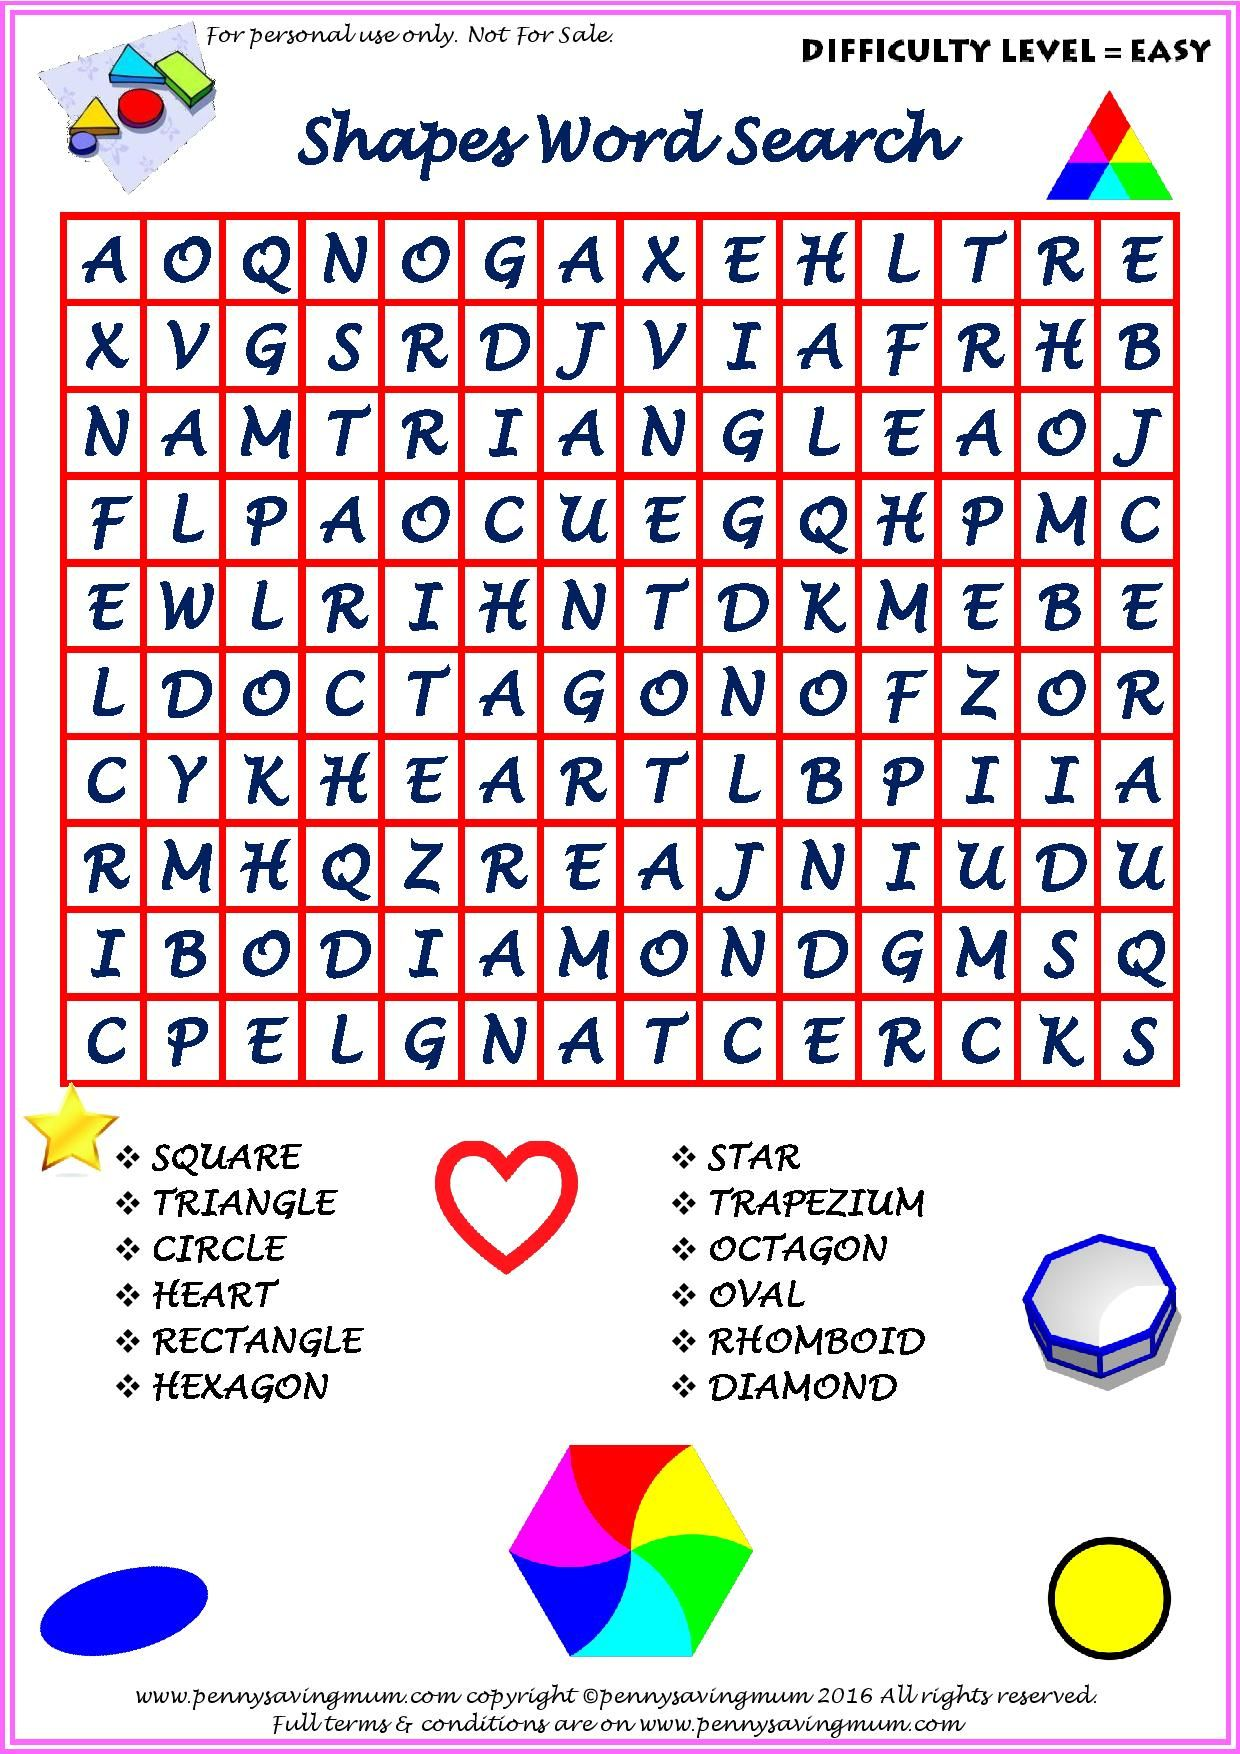 Word Search Shapes Easy Version